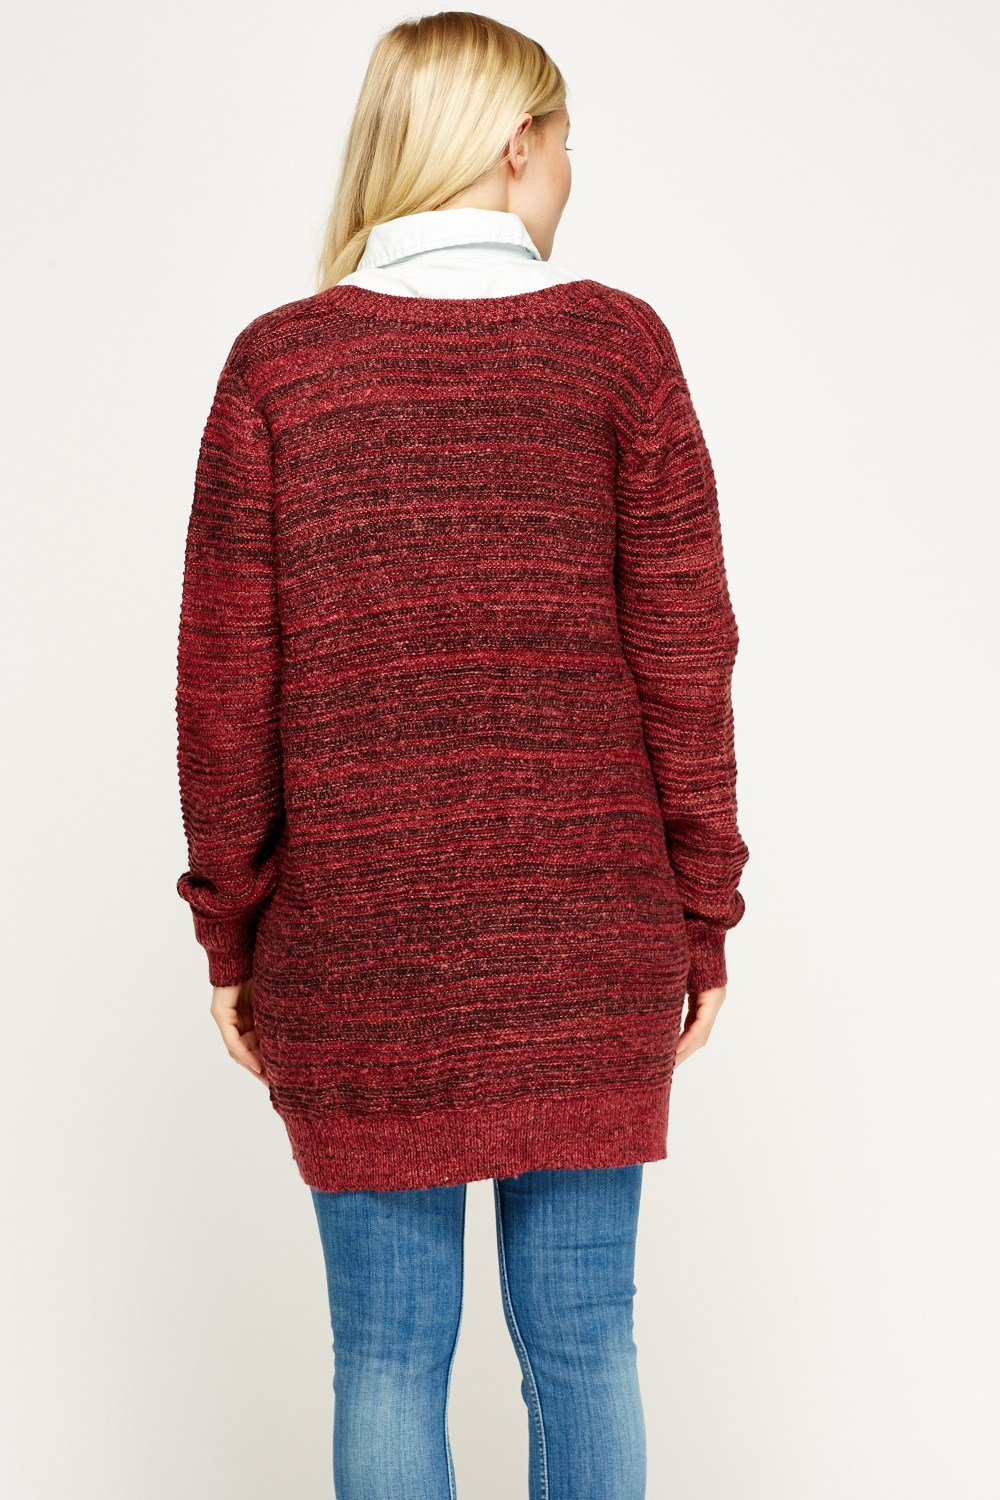 Knitting Pattern Open Front Cardigan : Speckled Open Front Knit Cardigan - Maroon - Just ?5